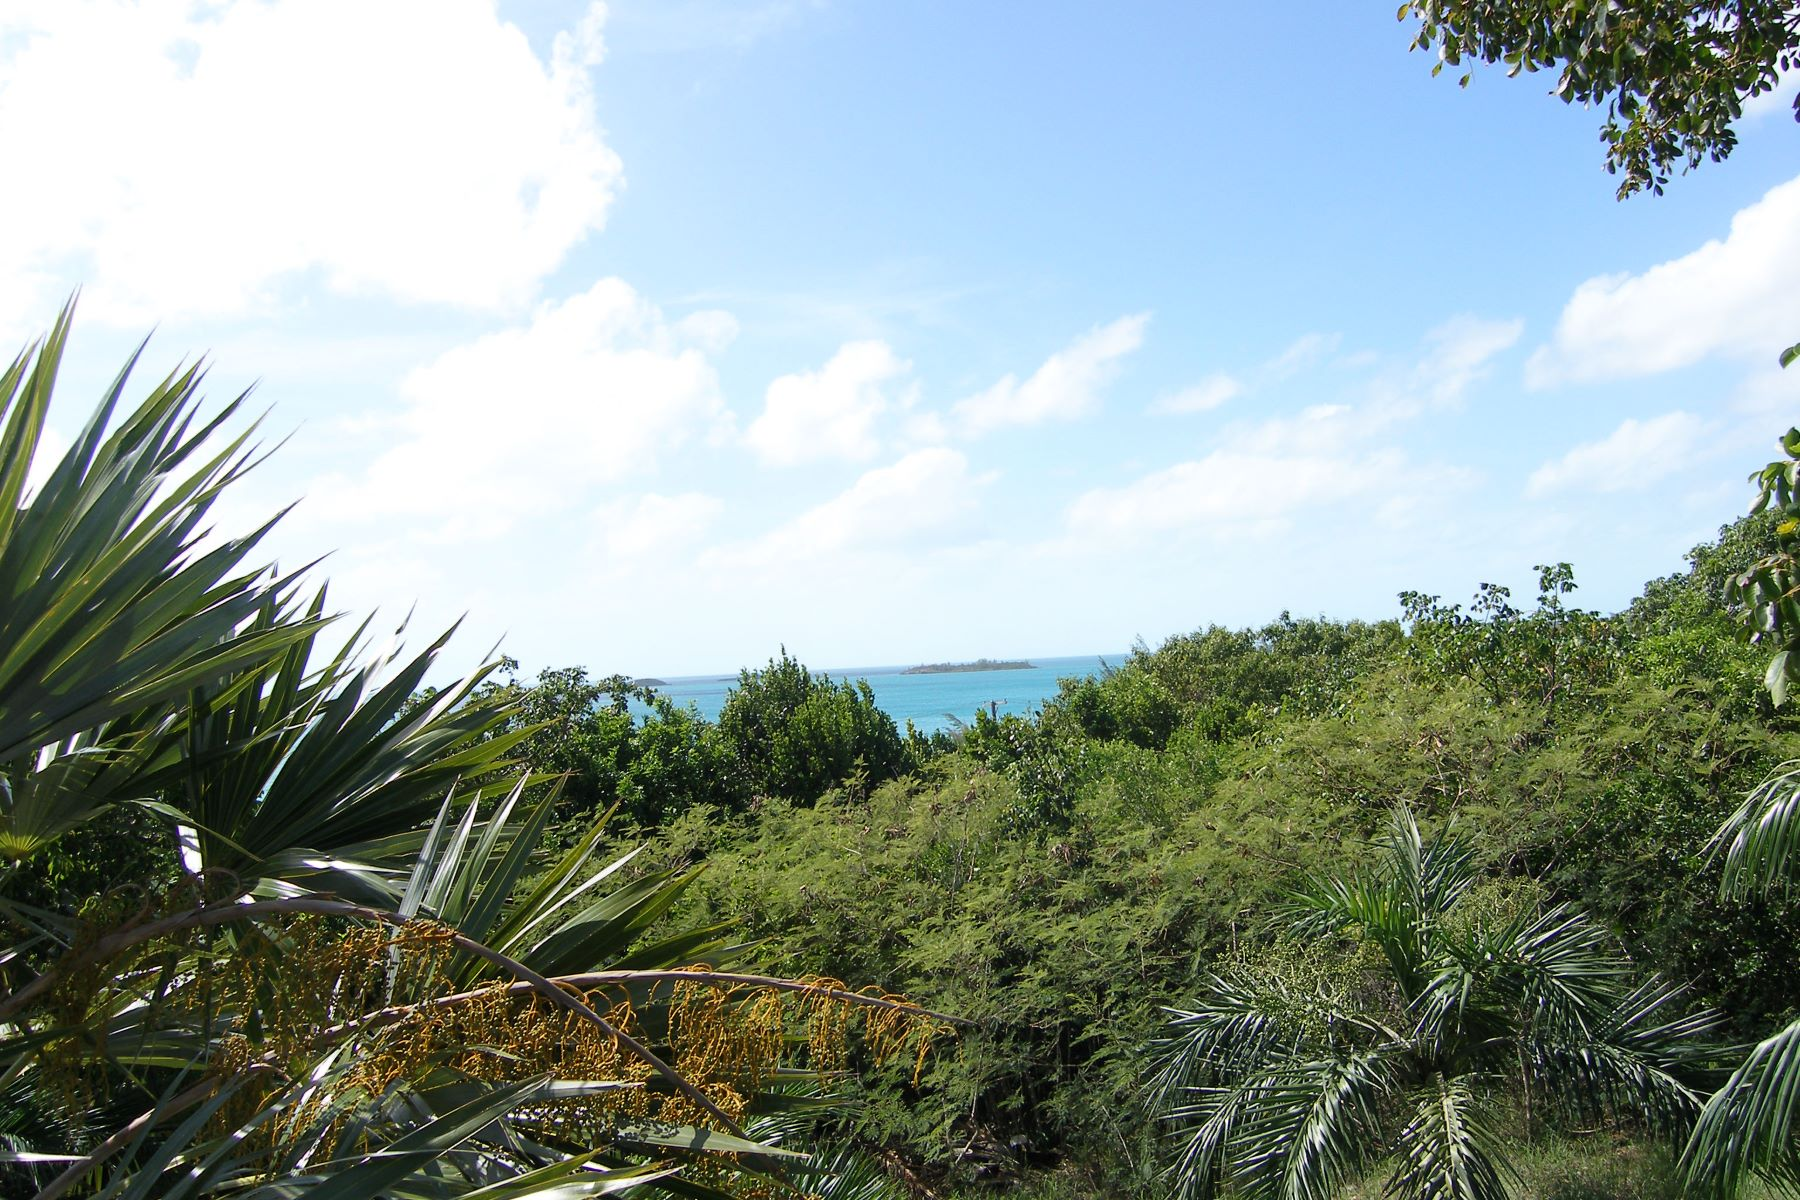 Terreno por un Venta en Palmetto Shores Lot Palmetto Point, Eleuthera Bahamas